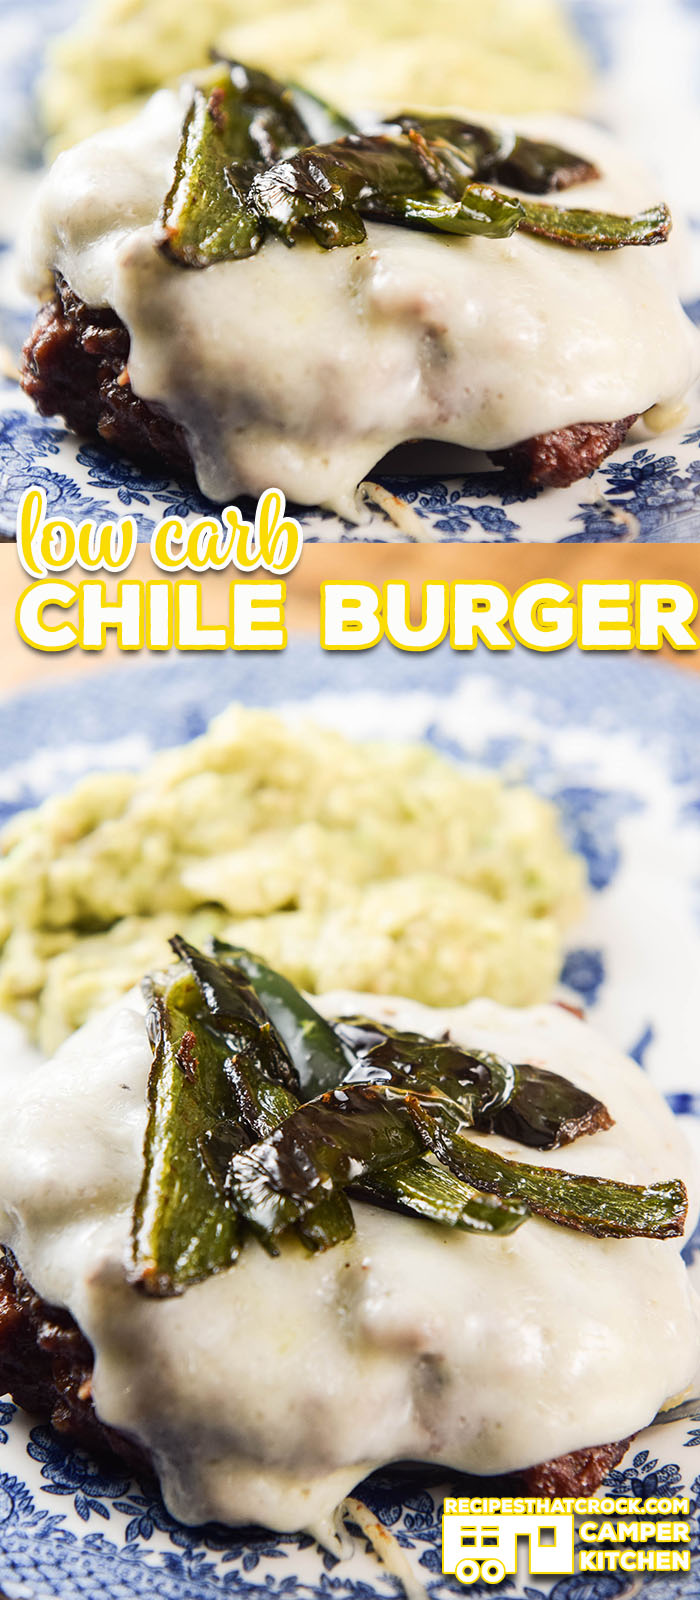 Are you looking for a low carb meal idea that your whole family will enjoy? Our Low Carb Chile Burgers are a favorite in our Camper Kitchen! Serve it up with a side our guacamole for a delicious meal or with a bun for your carb loving friends!